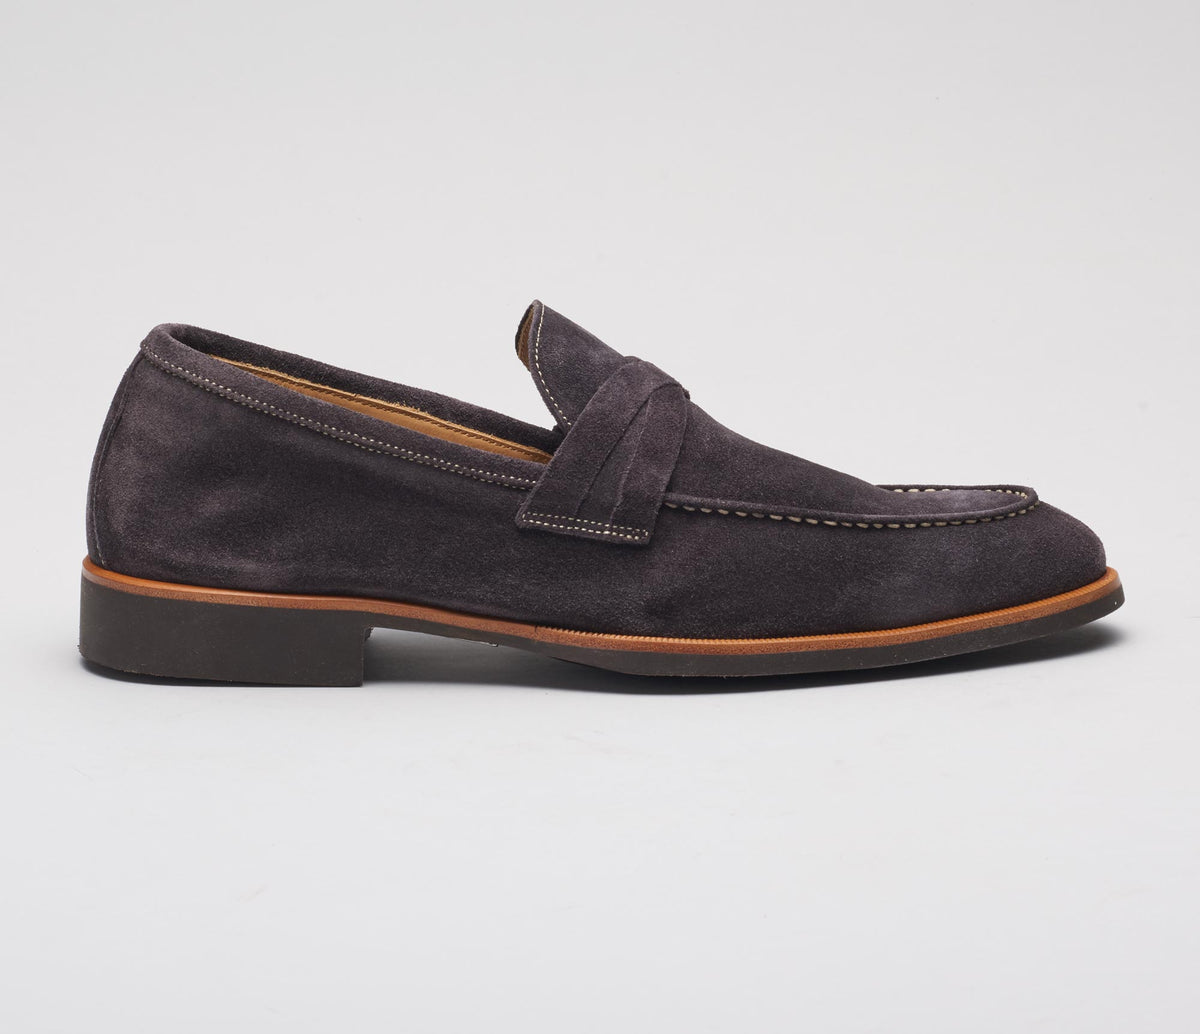 Corsica Suede Loafer in Lavagna